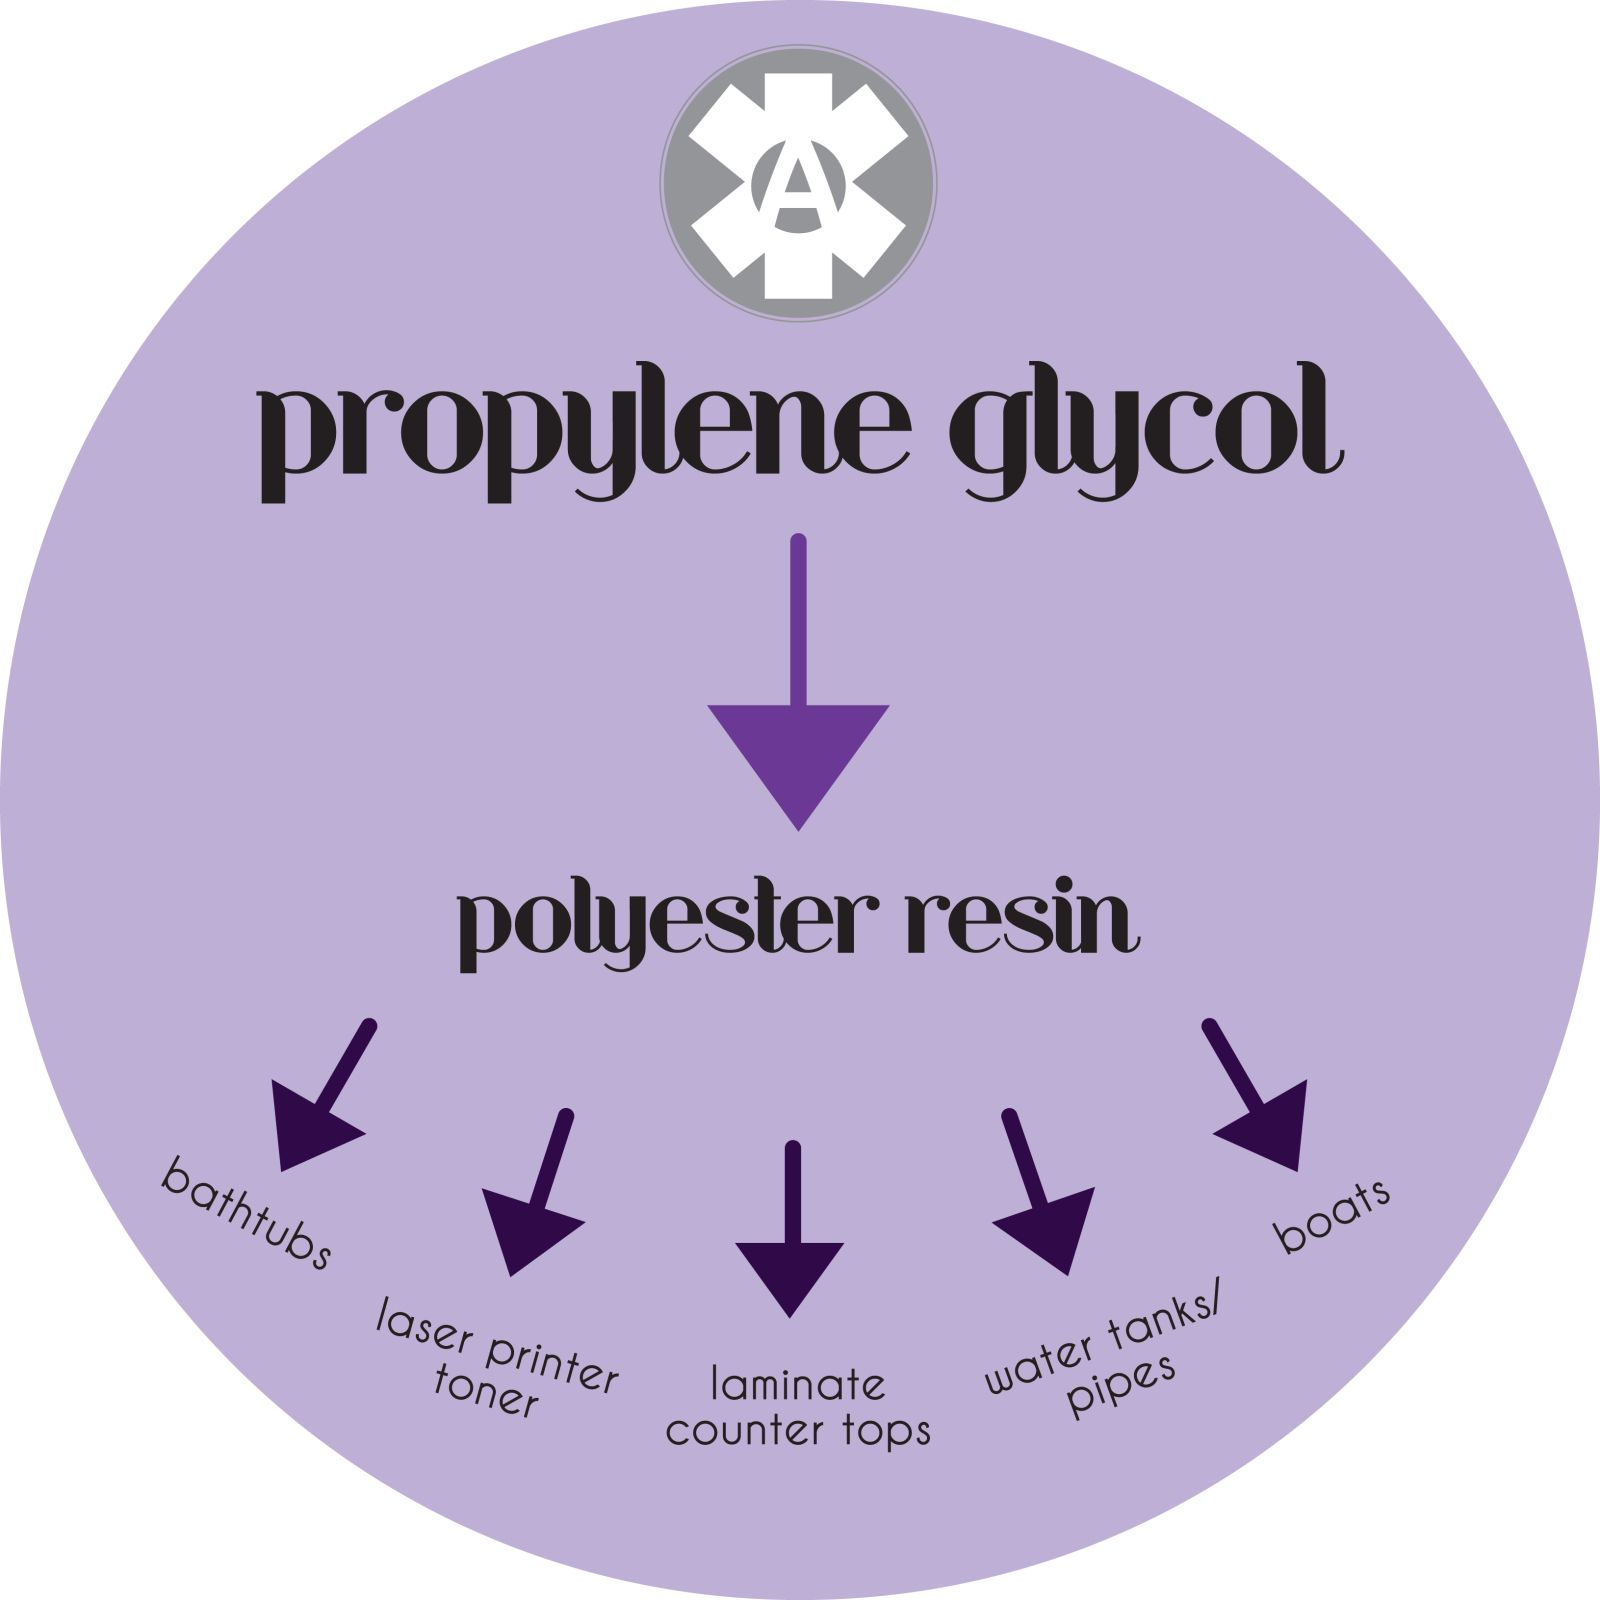 What are the side effects of propylene glycol?